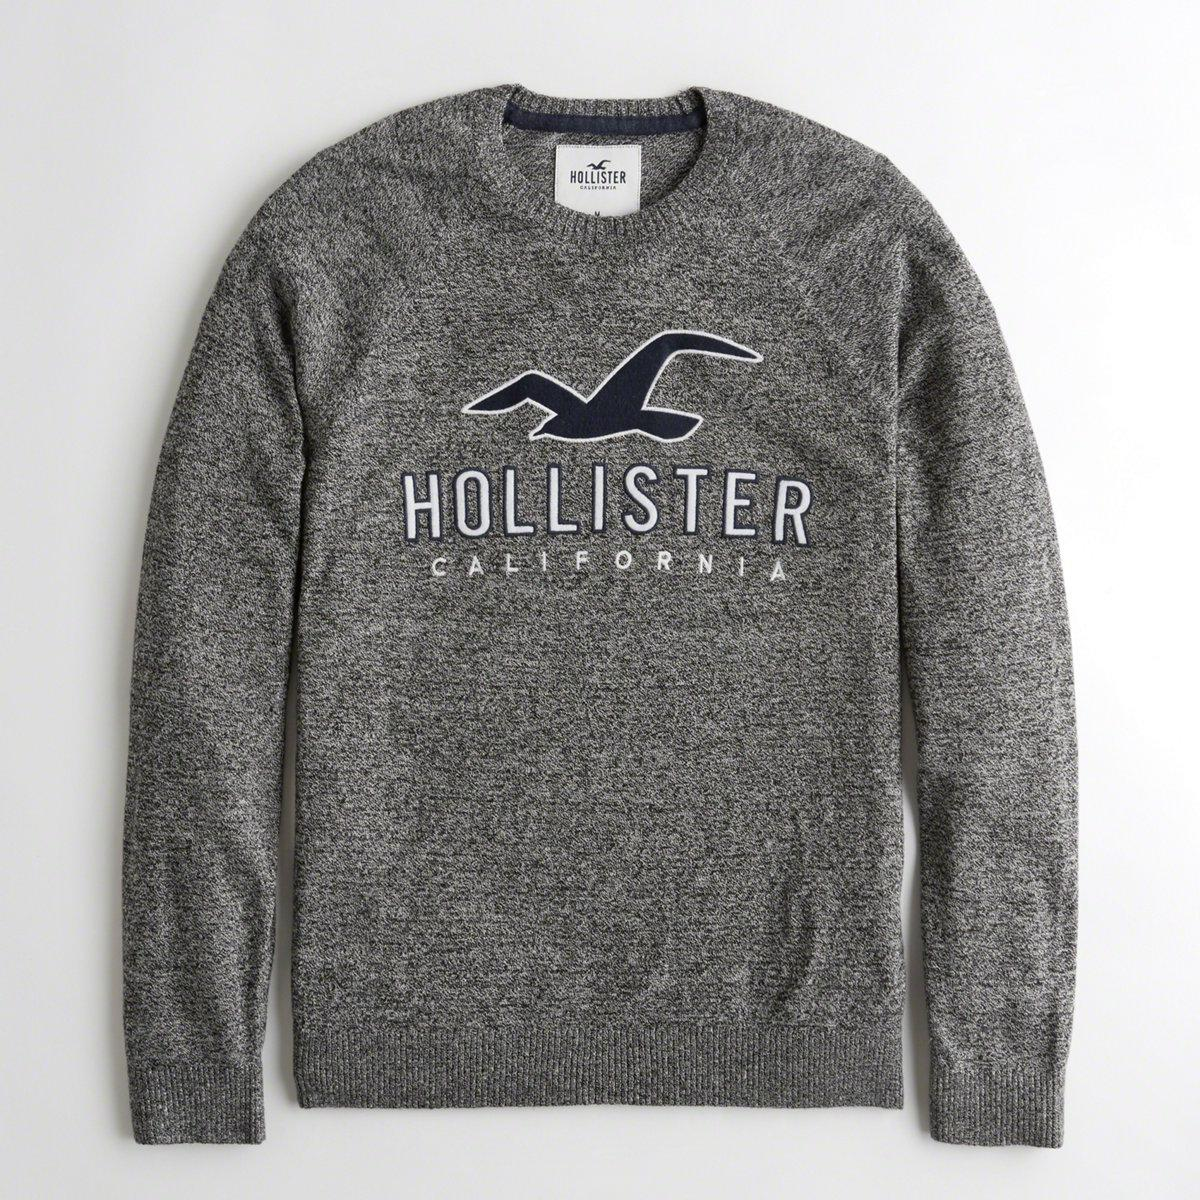 7787d981 Hollister Guys Logo Crewneck Sweatshirt From Hollister in Gray for ...